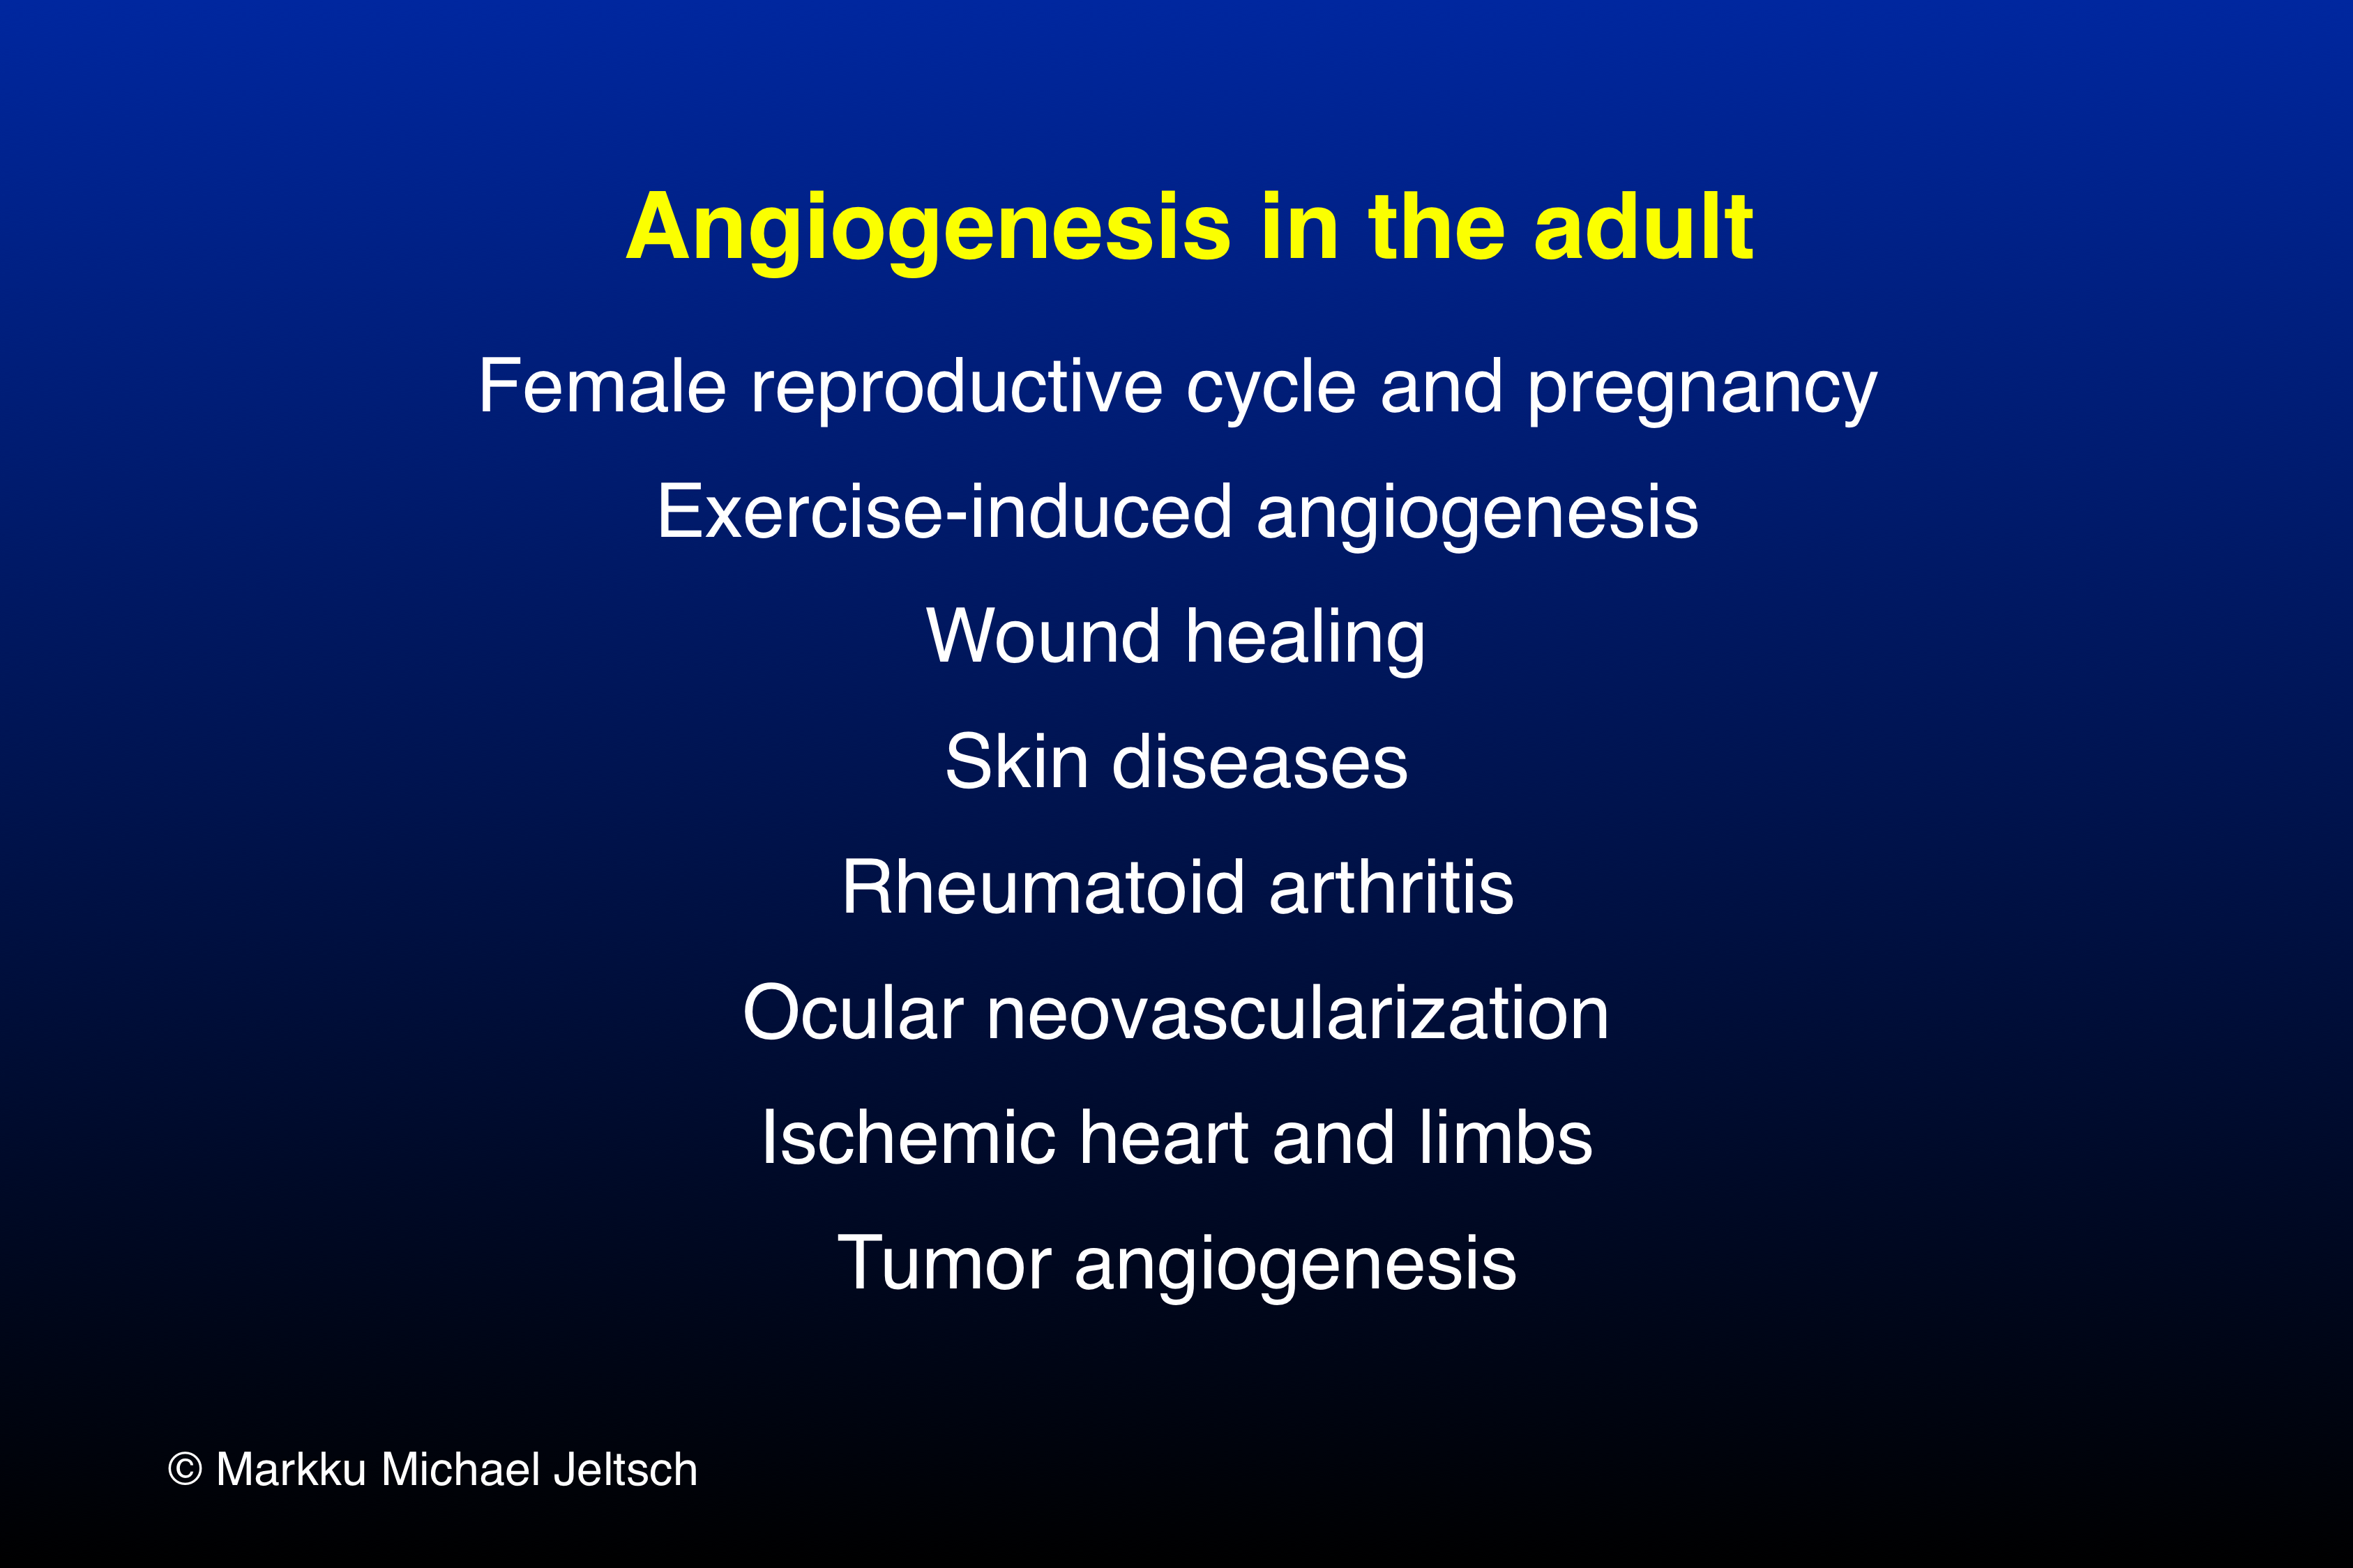 angiogenesis in the adult organism